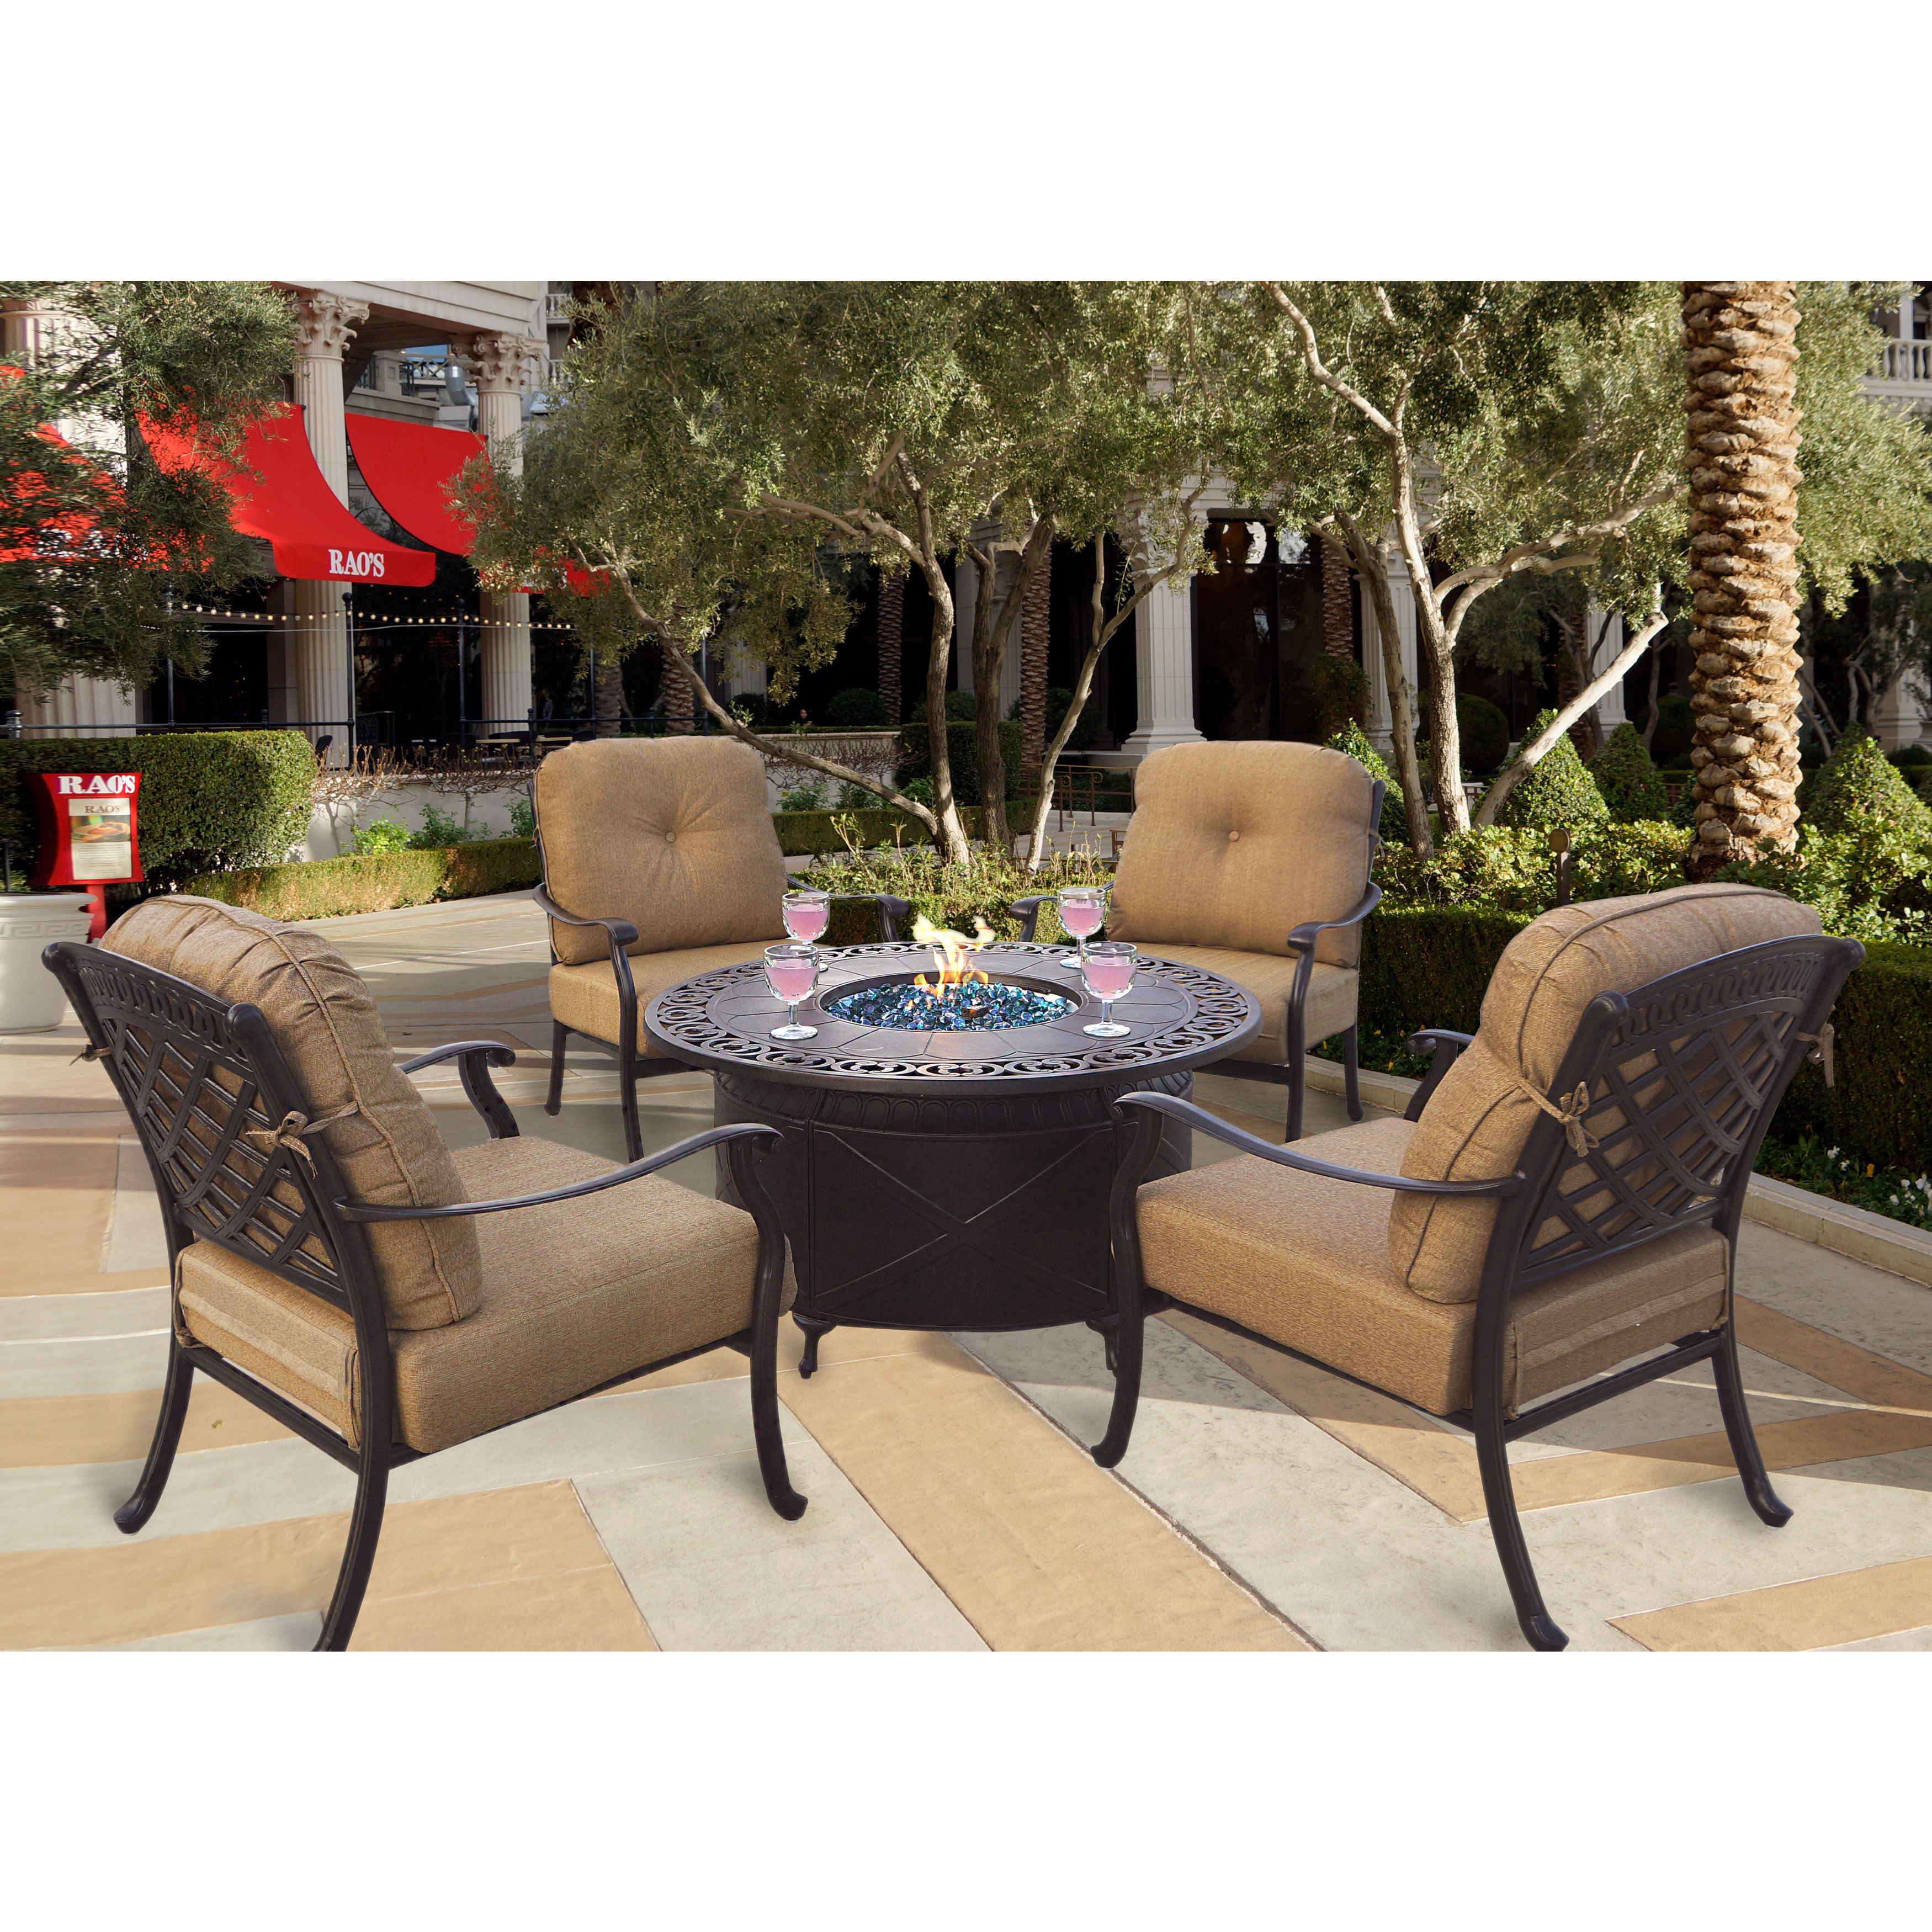 a9337fe42ca0 Darlee Oceanside Cast Aluminum 5-Piece Chat Set, 47'' Round Propane Fire  Pit Chat Table